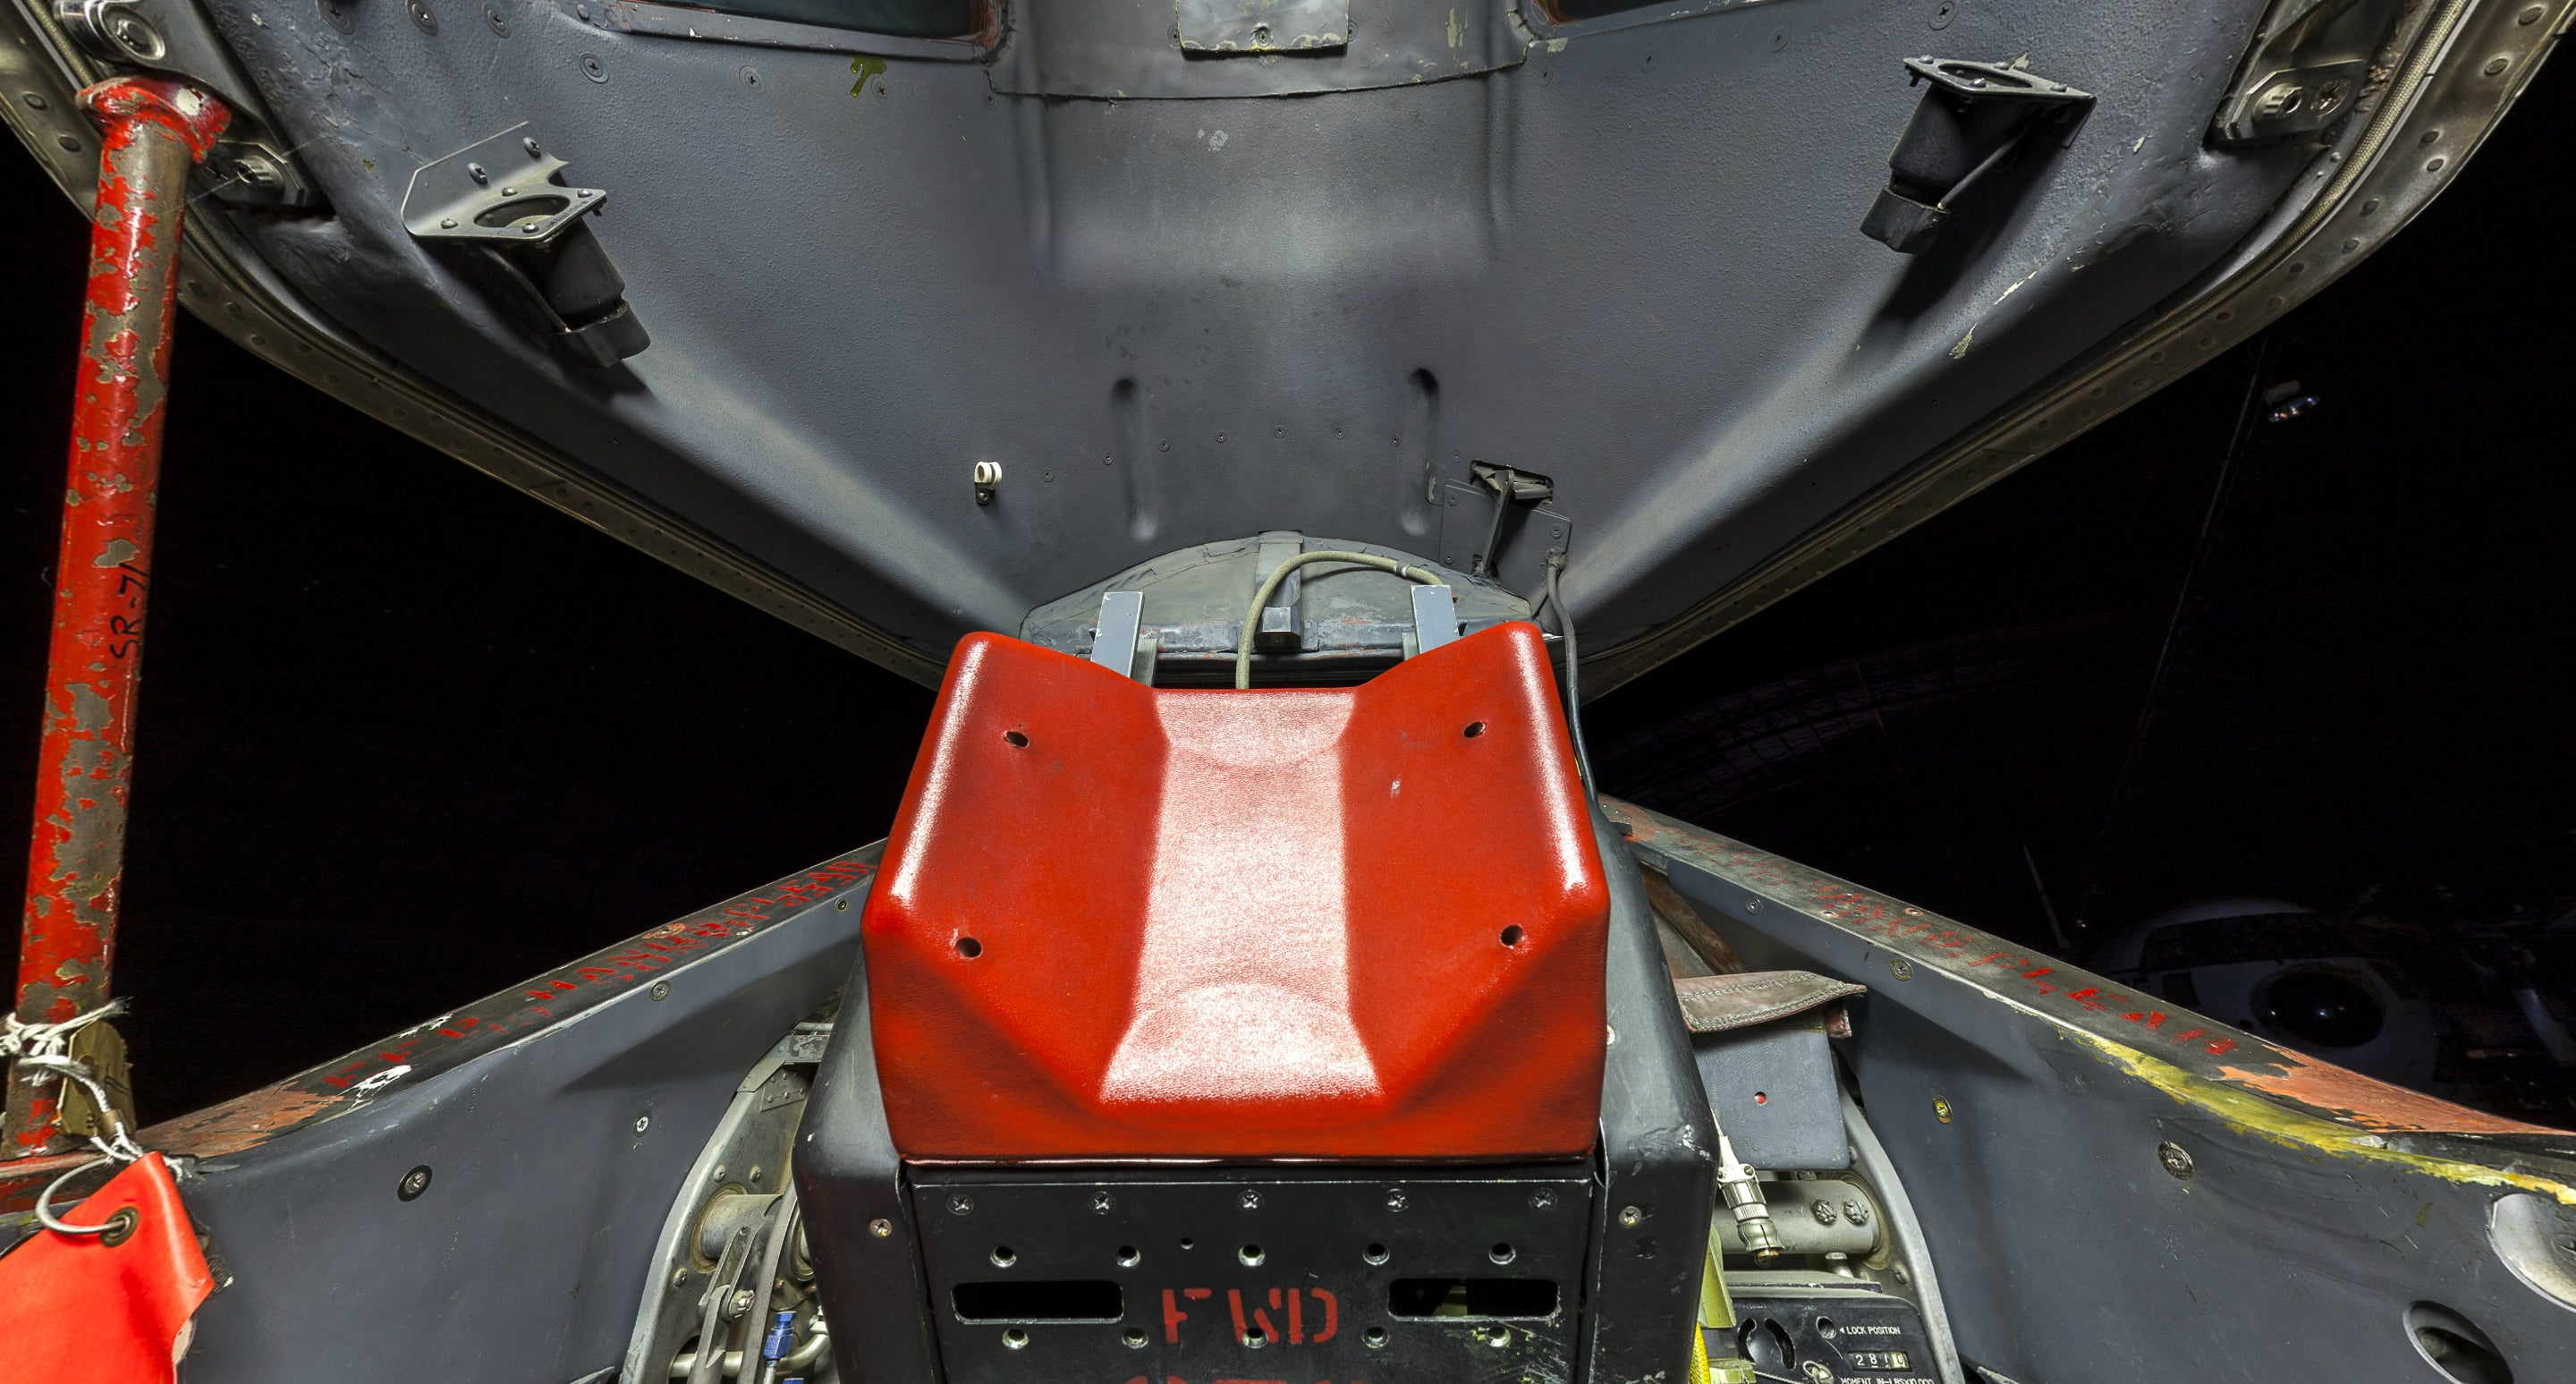 Amazing ultra-high definition photo of the SR-71 Blackbird cockpit